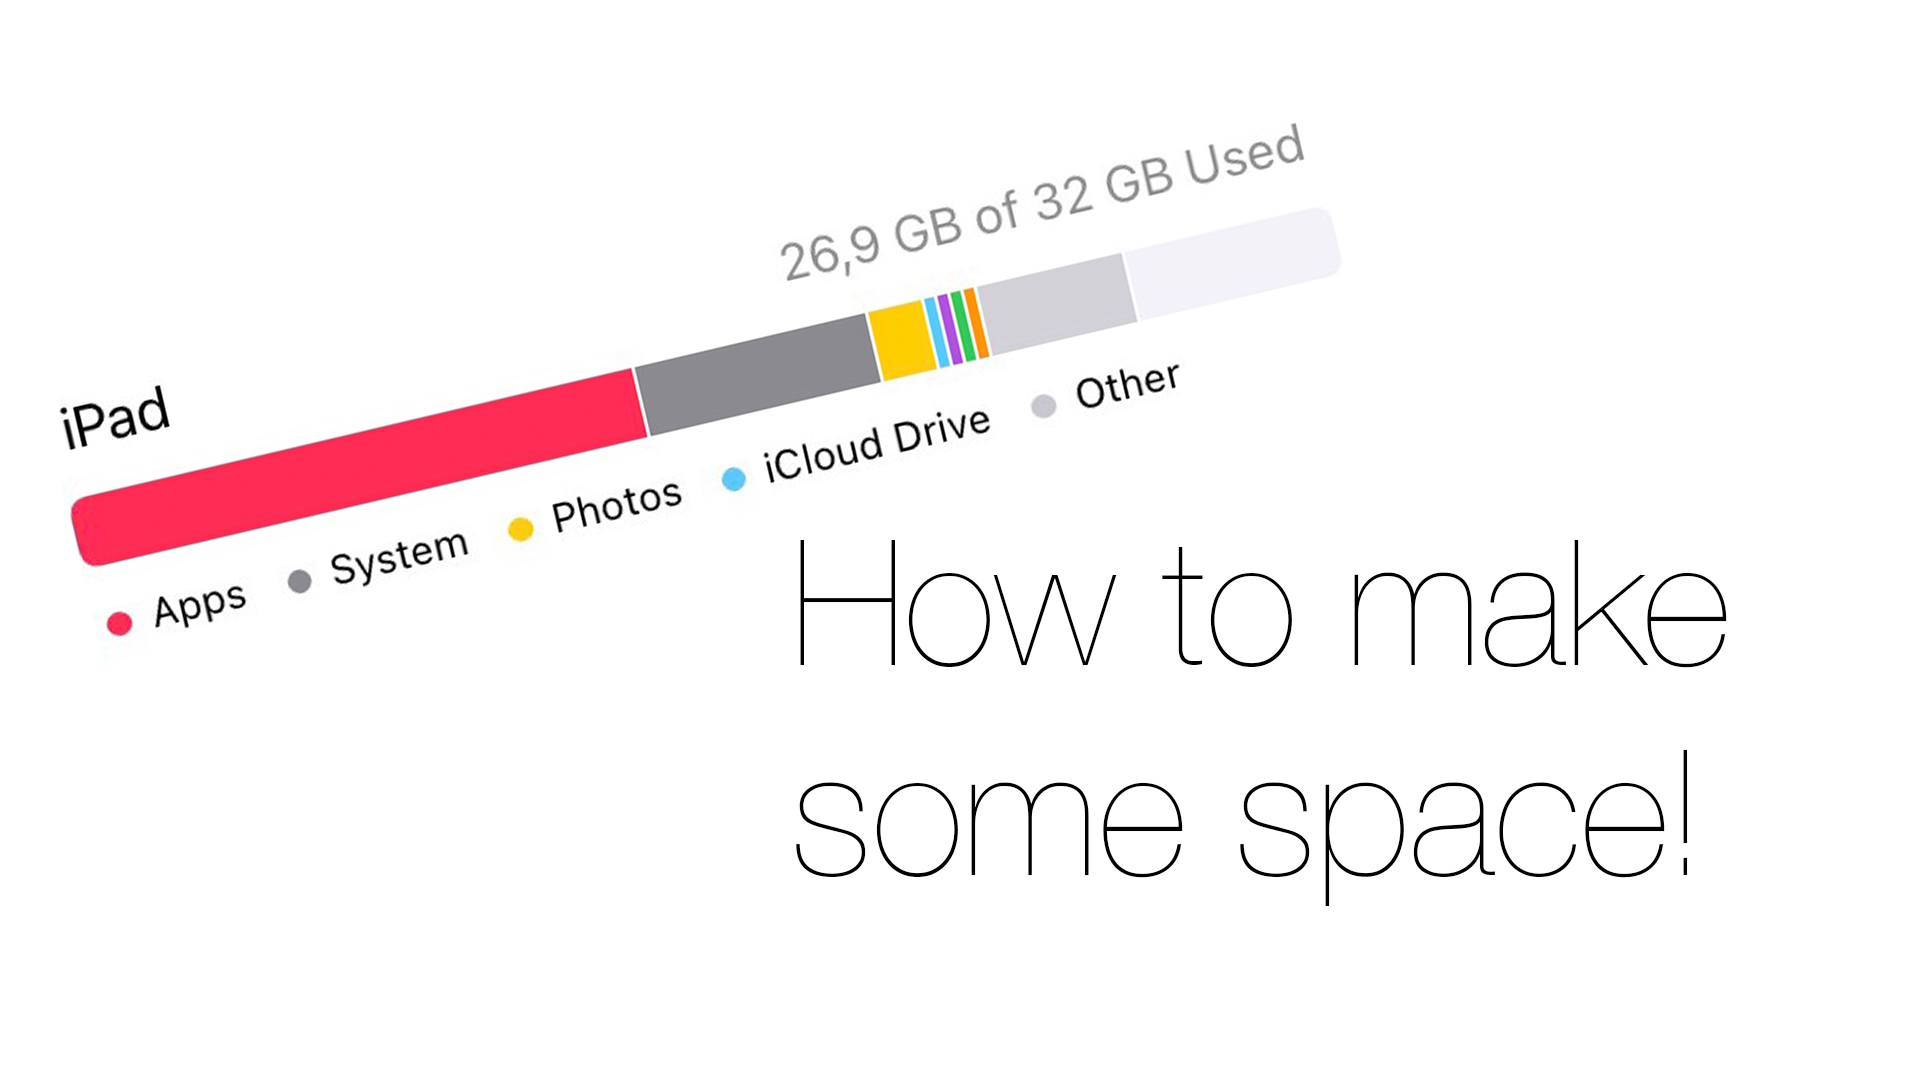 How to make some space